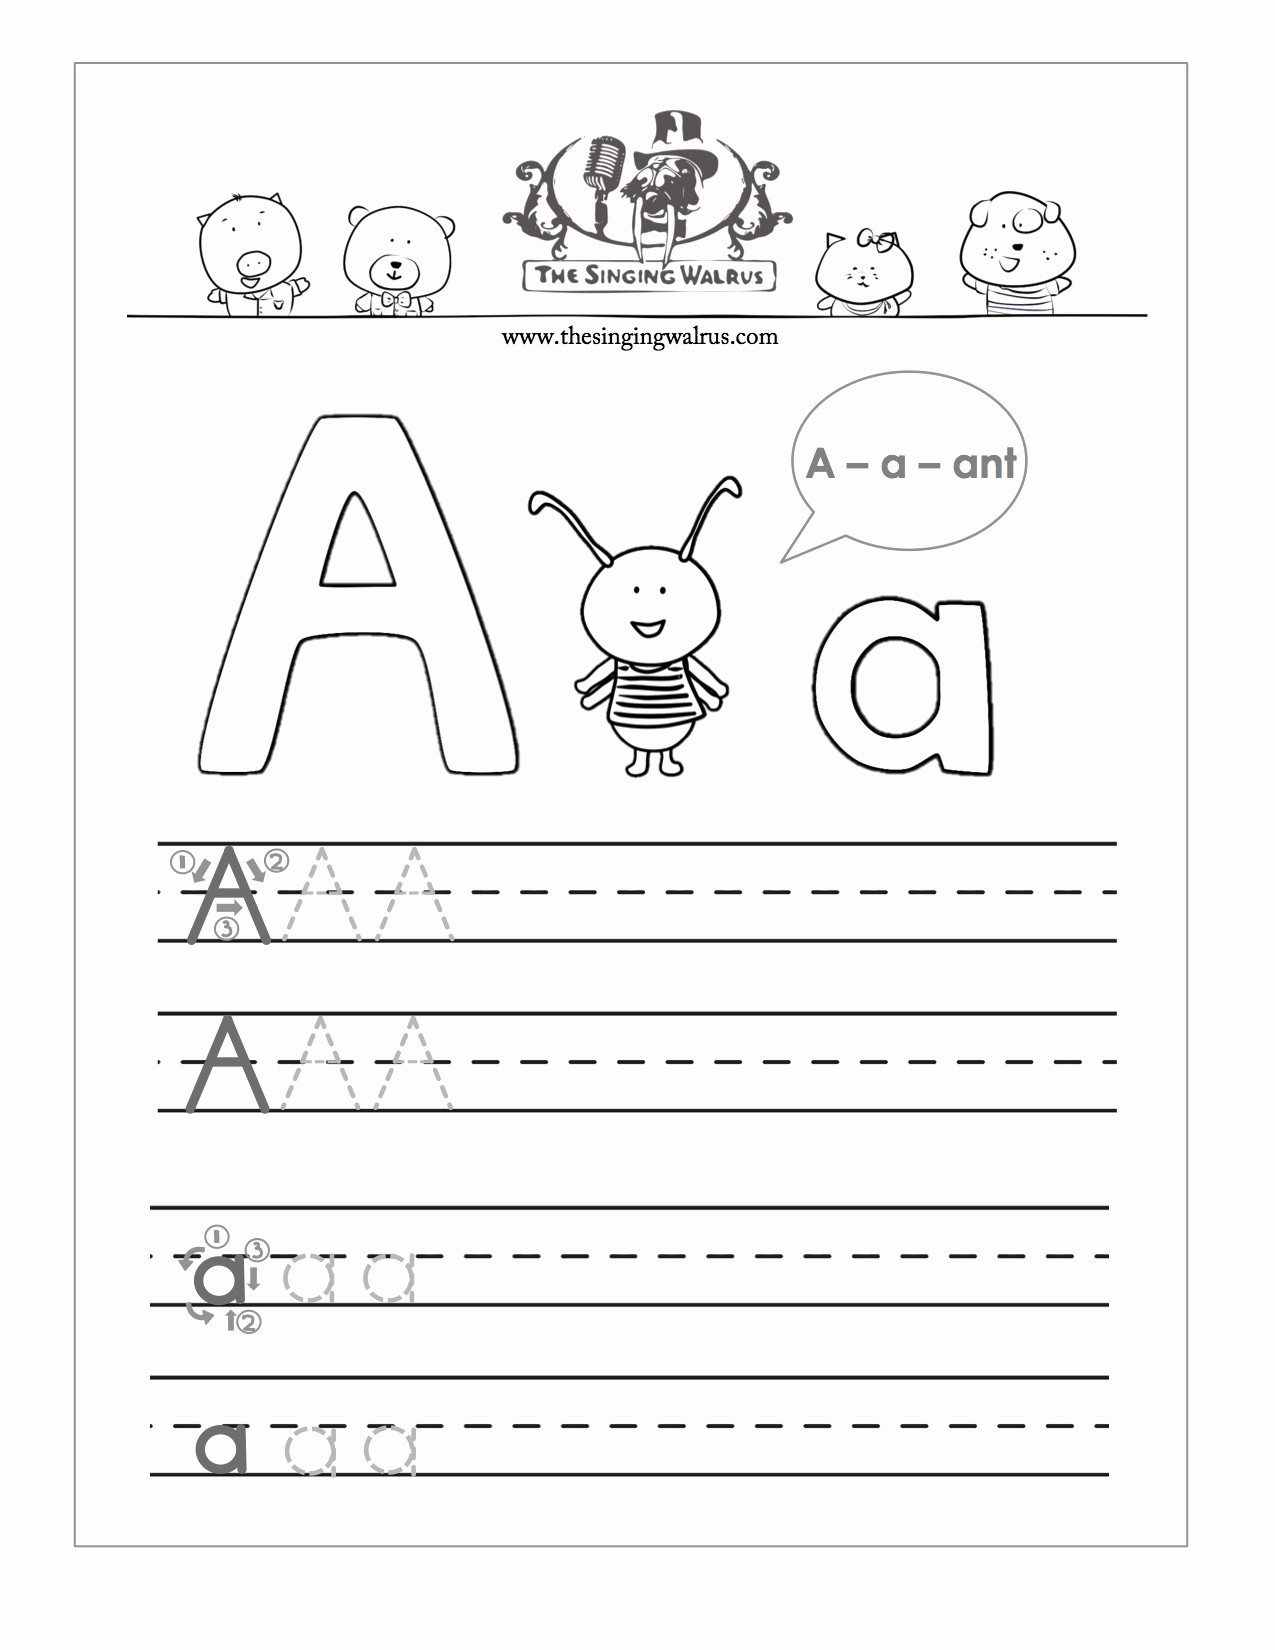 Lined Sheets for Handwriting Practice Inspirational Free Printable Preschool Alphabet Handwriting Worksheets